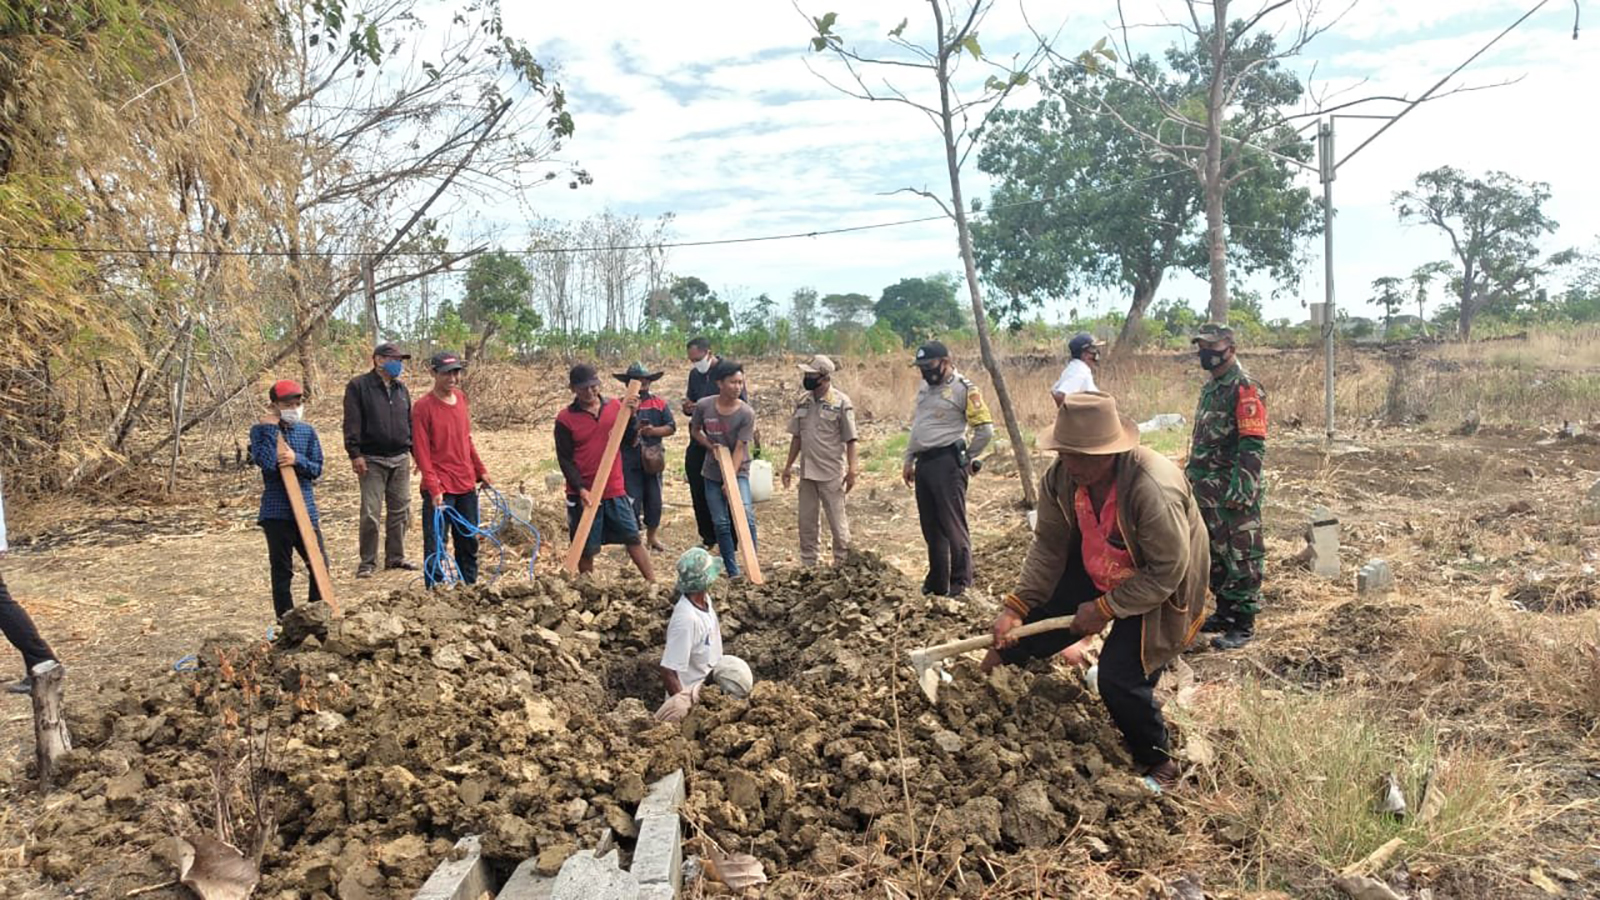 Eight people in Indonesia's Gresik Regency were forced to dig graves as punishment for not wearing masks, according to Head of Cerme Sub-district, Suyono.